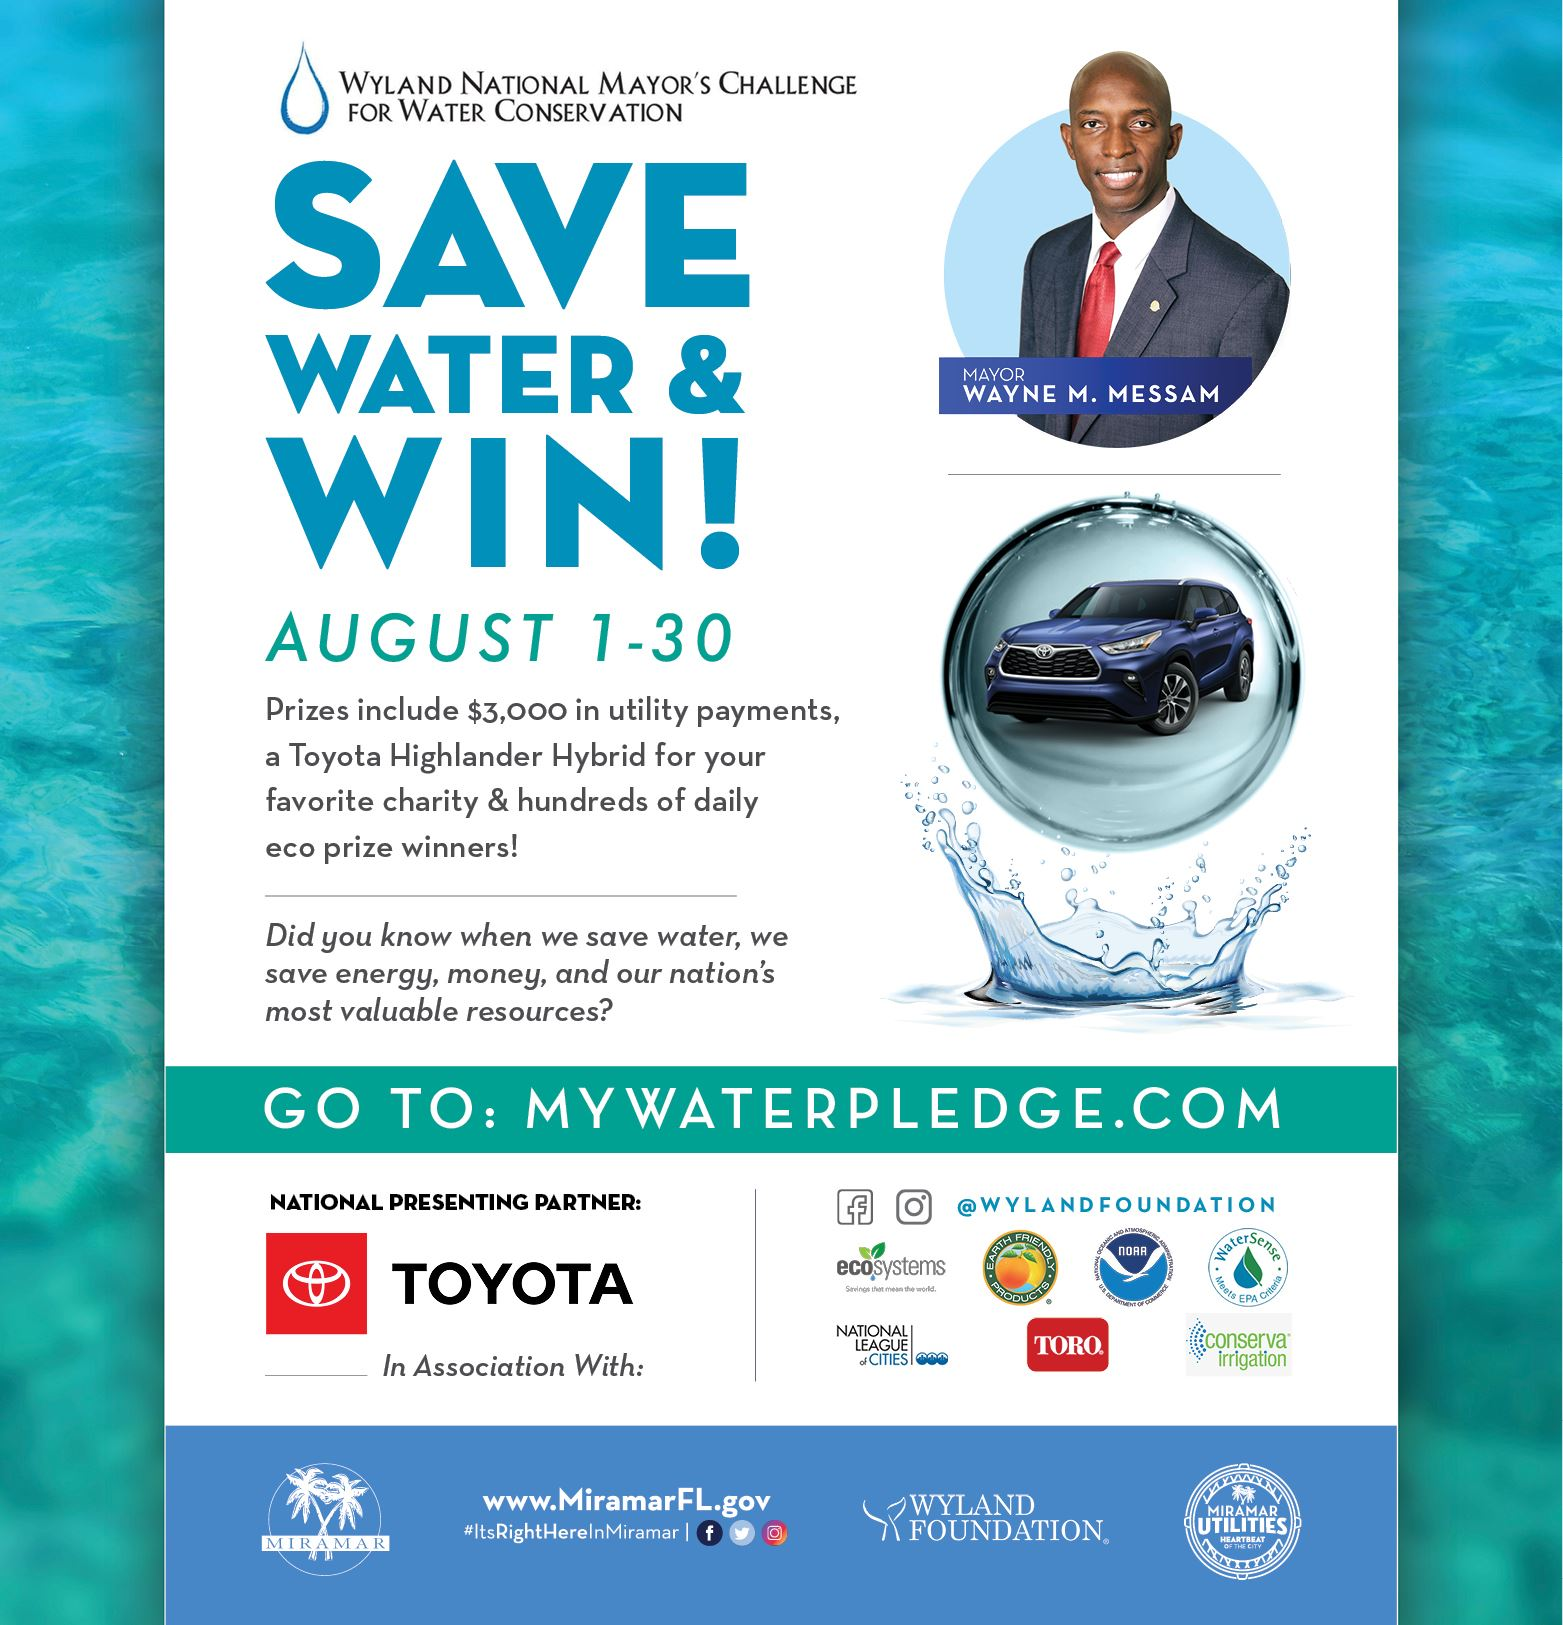 Mayor Messam Wyland Challenge Water Conservation